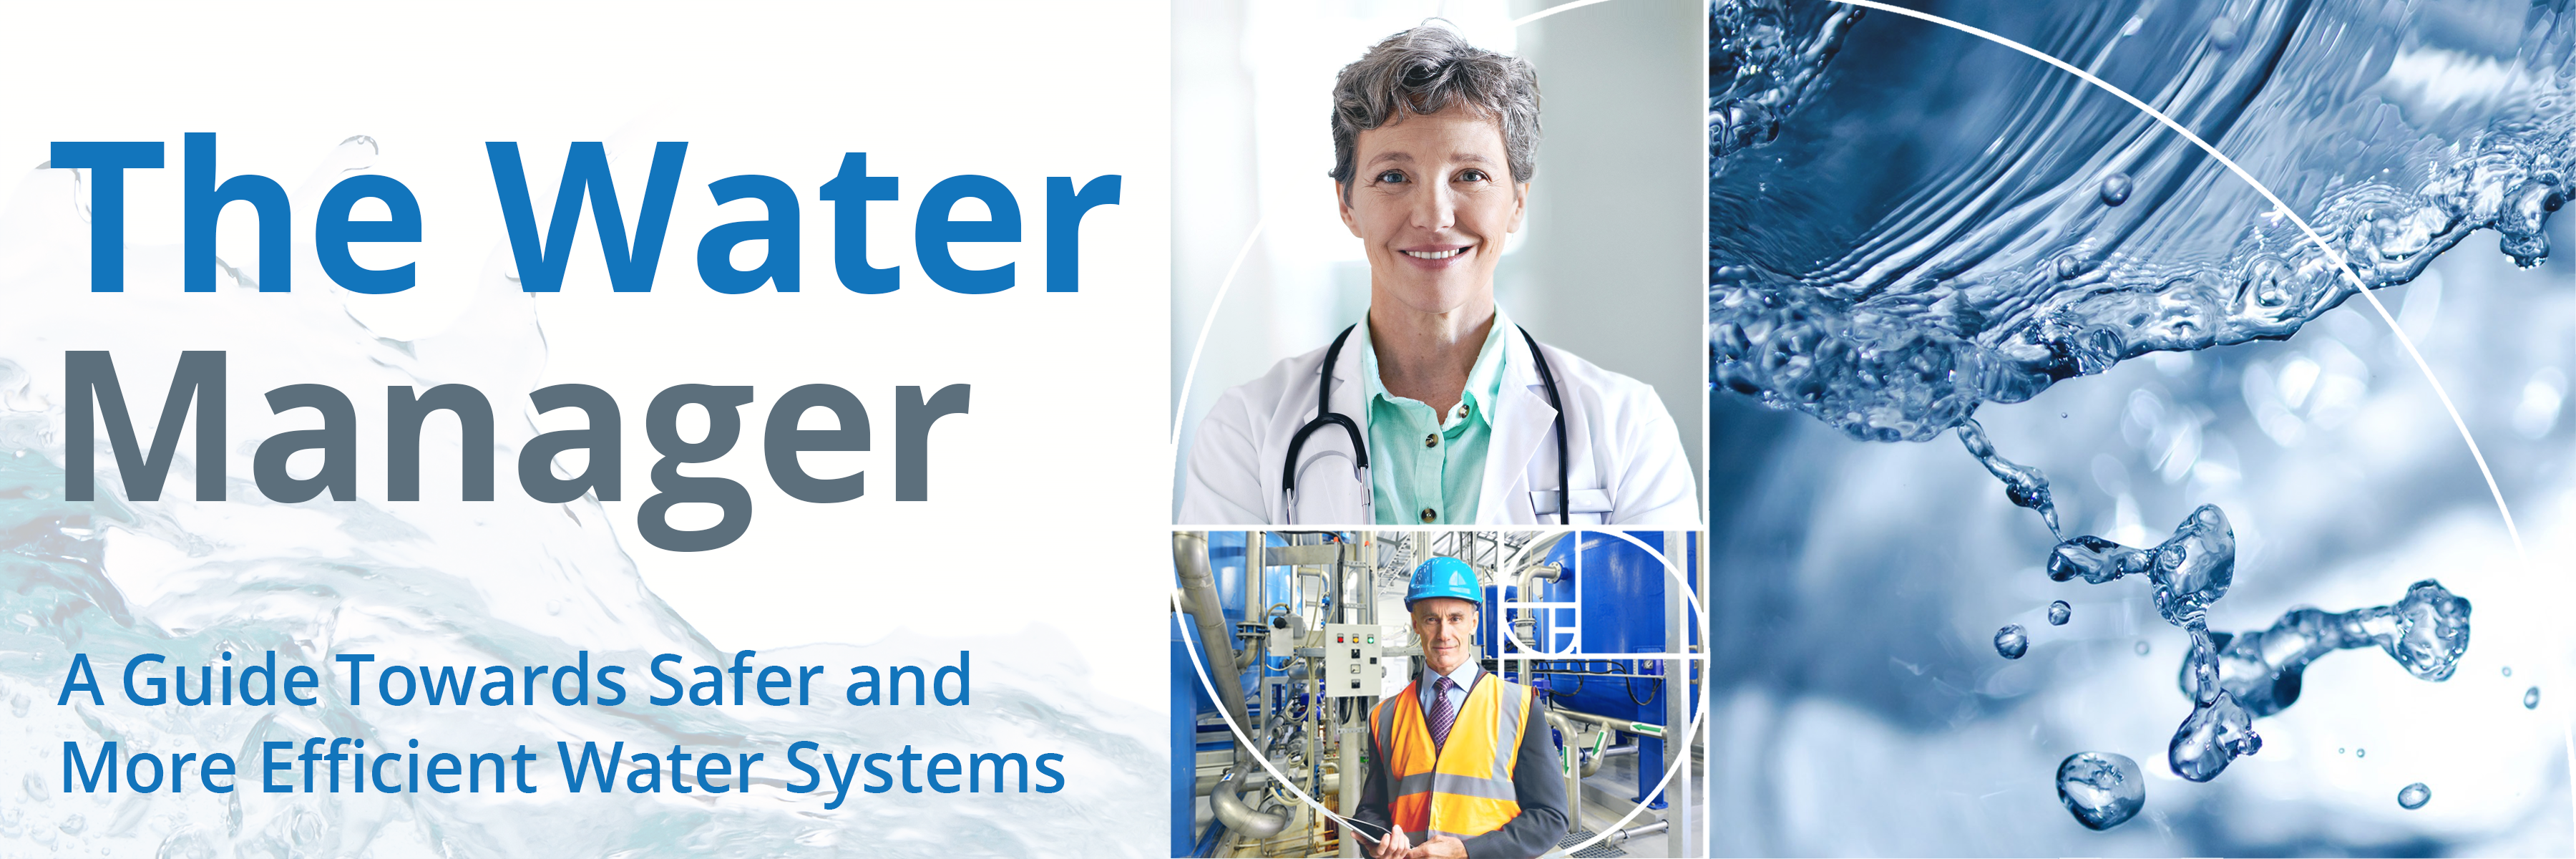 The Water Manager Banner